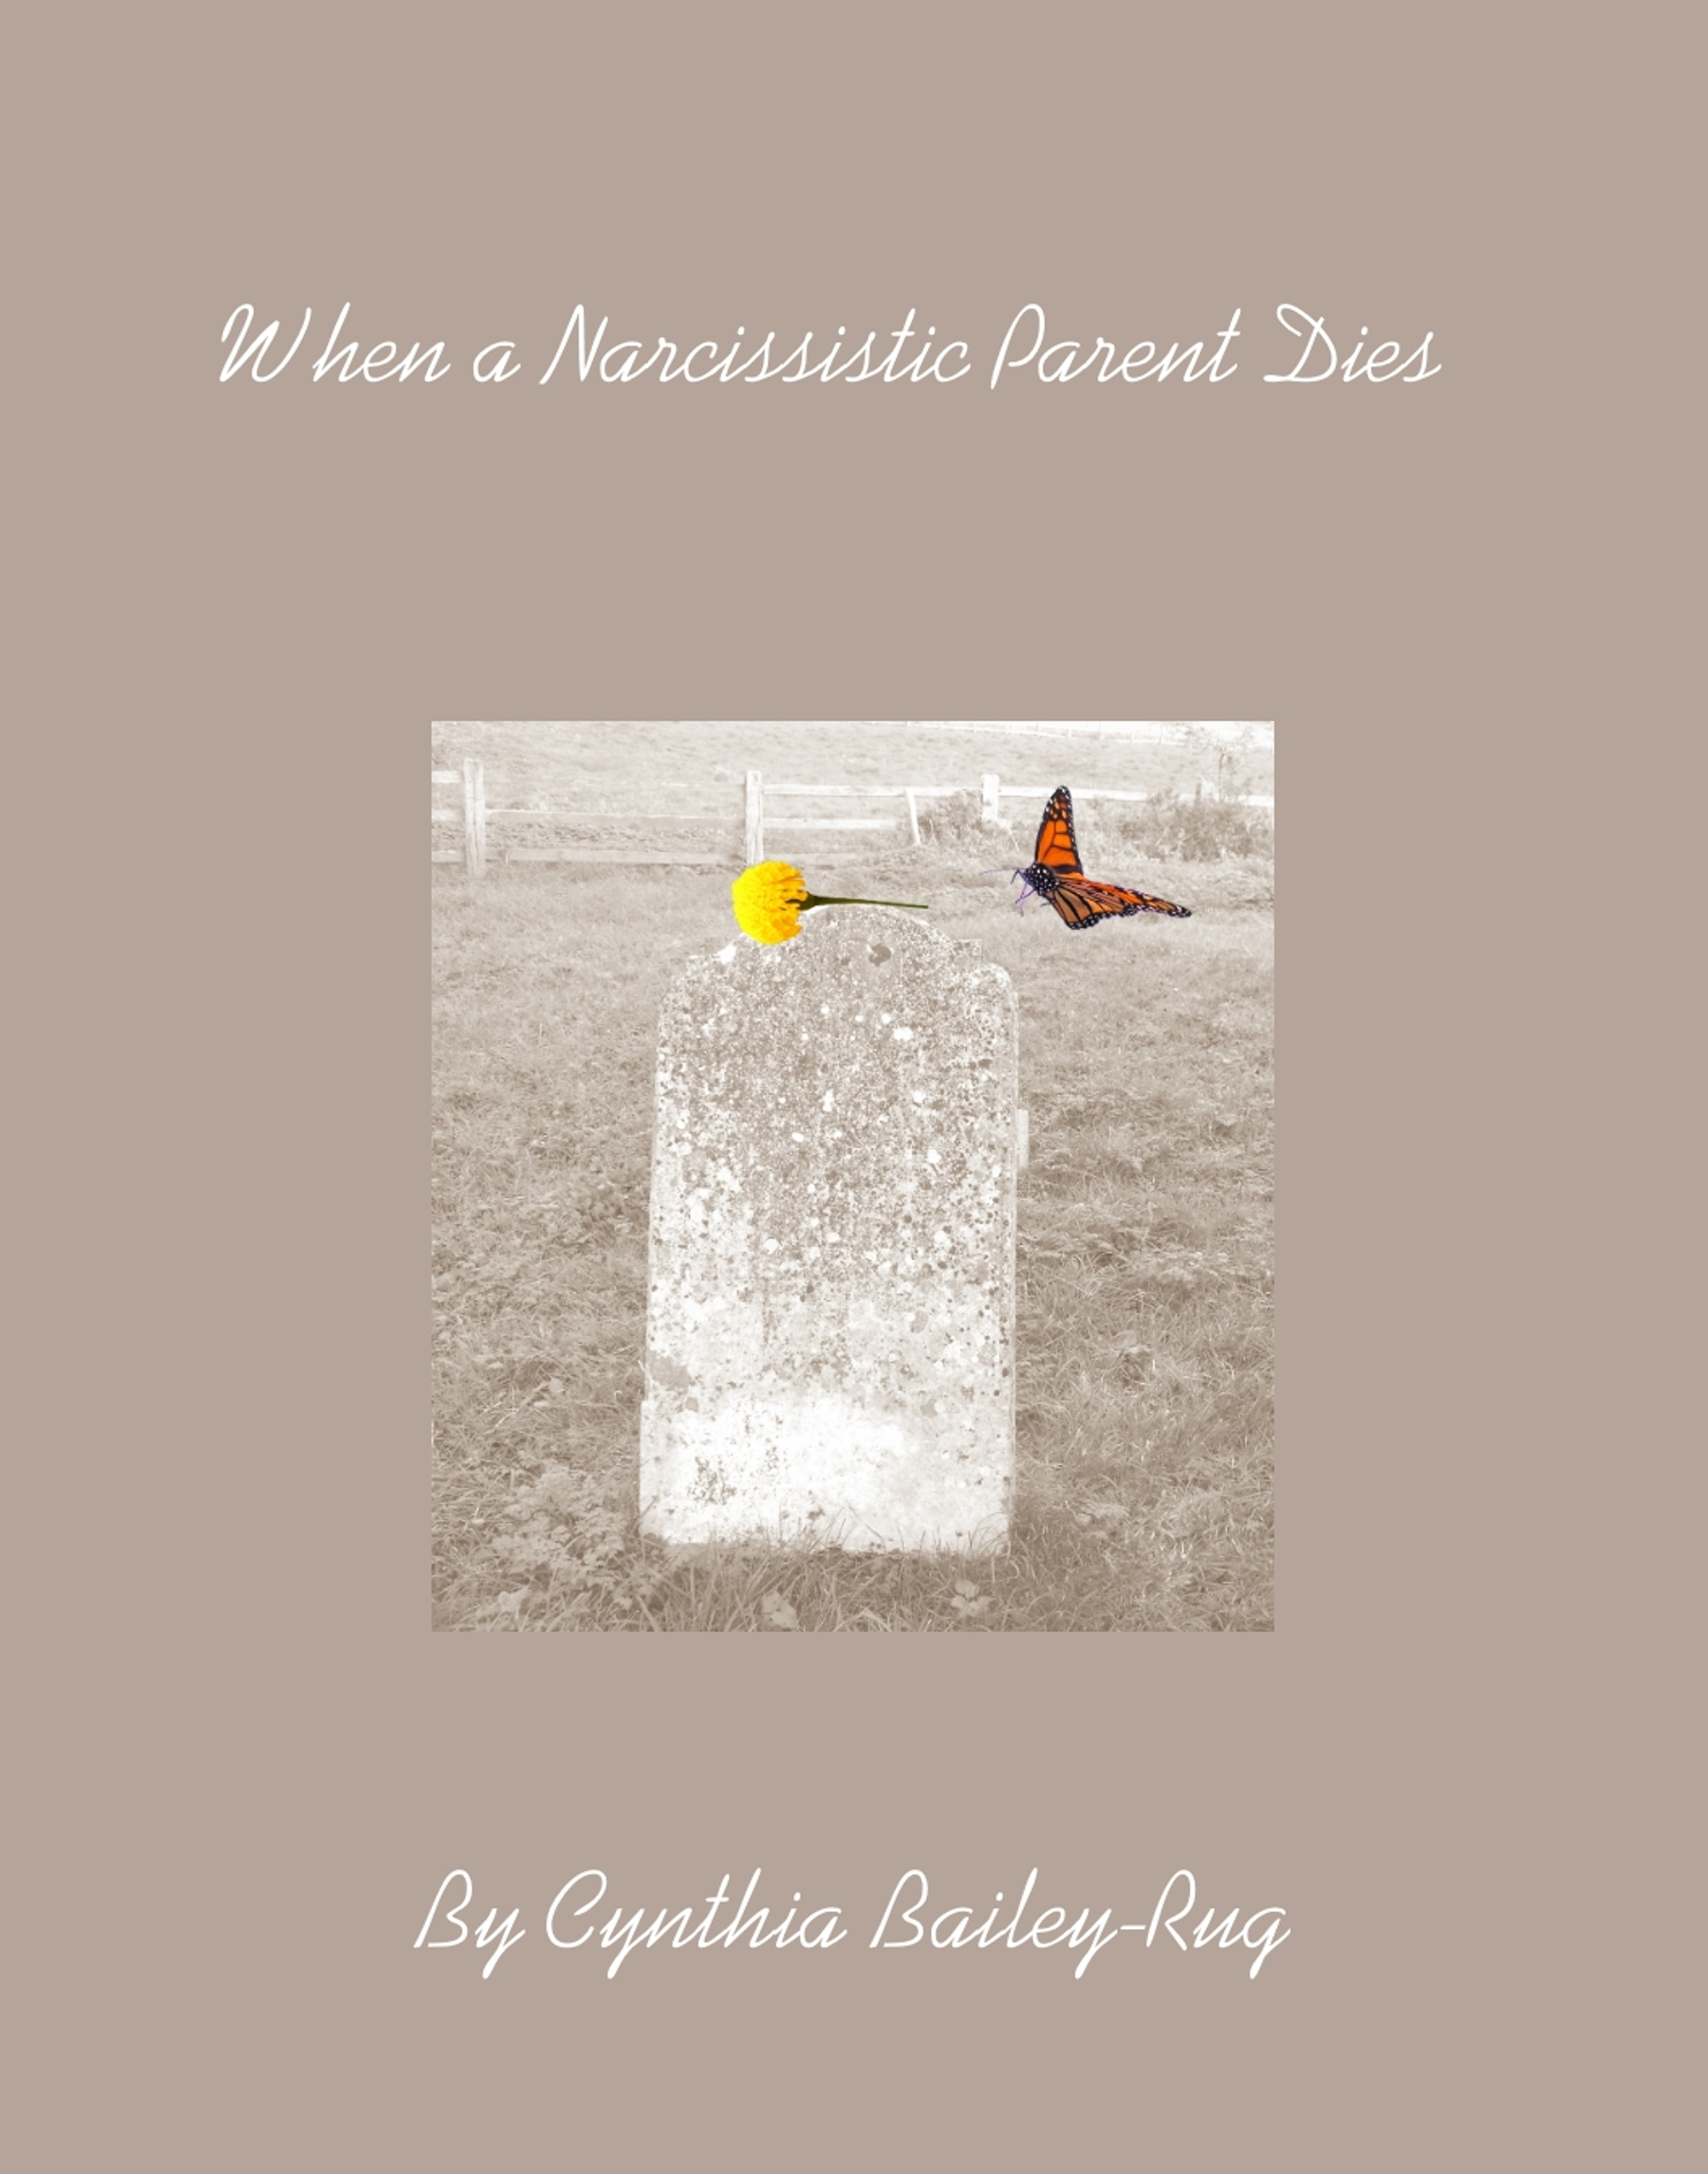 The Narcissistic Parent Of Special >> Smashwords When A Narcissistic Parent Dies A Book By Cynthia